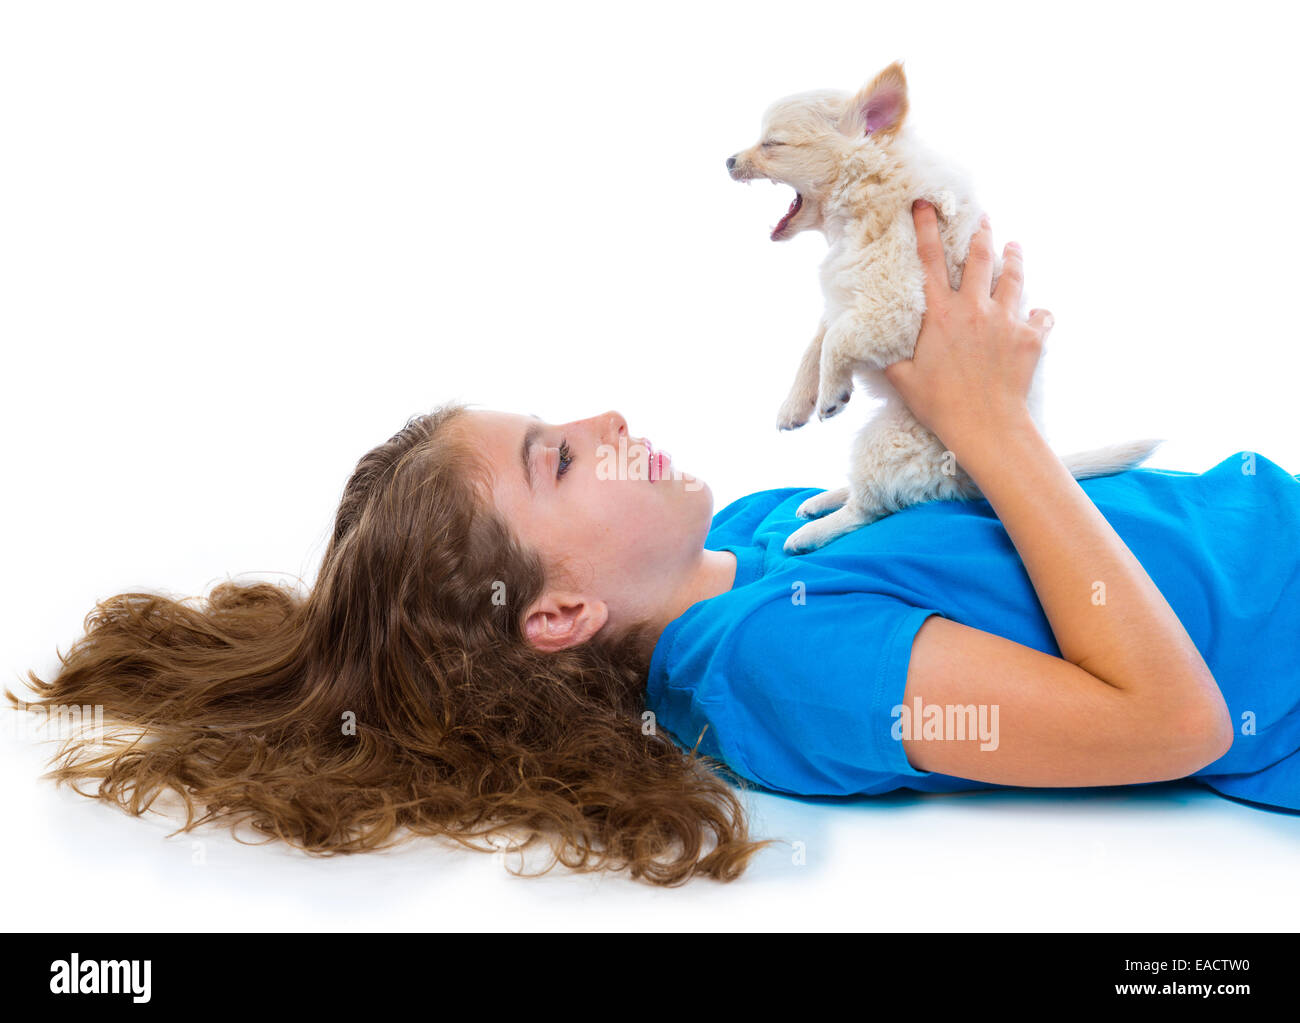 relaxed kid girl and puppy yawning chihuahua dog lying happy on white background - Stock Image